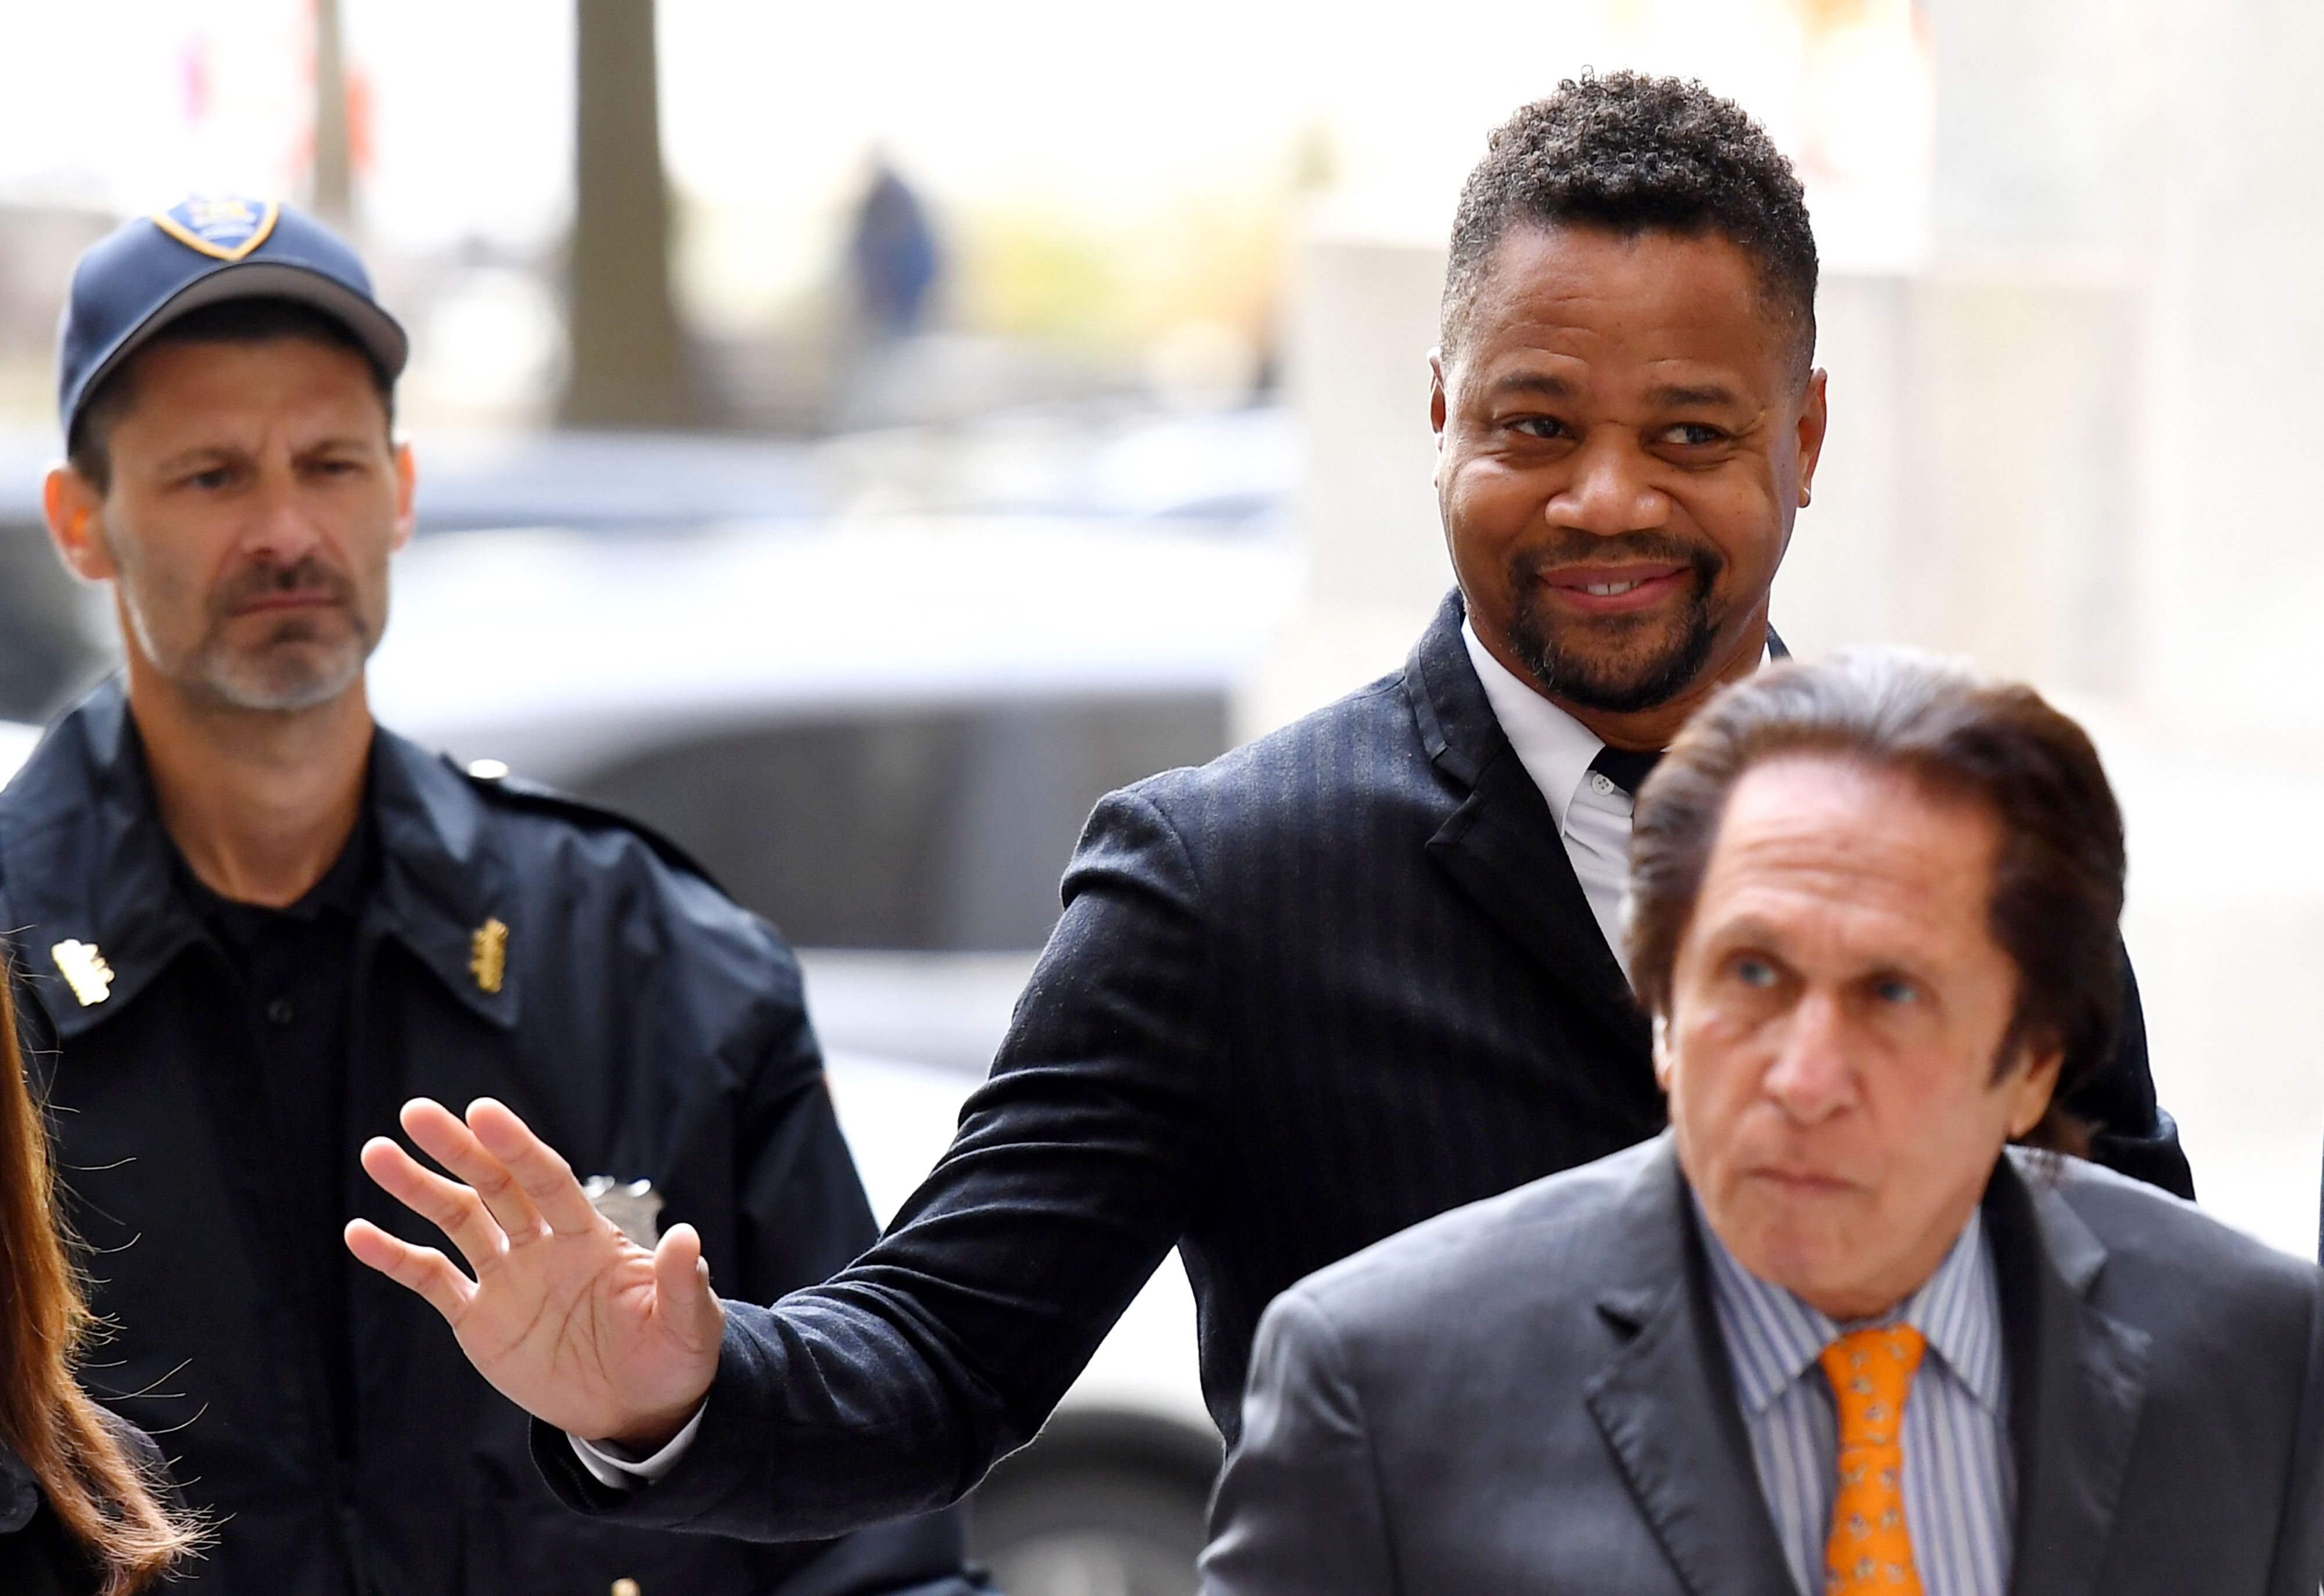 Cuba Gooding Jr. appeared in court for the start of his groping trial, but it was later delayed as he faces a new charge, which will soon be identified.